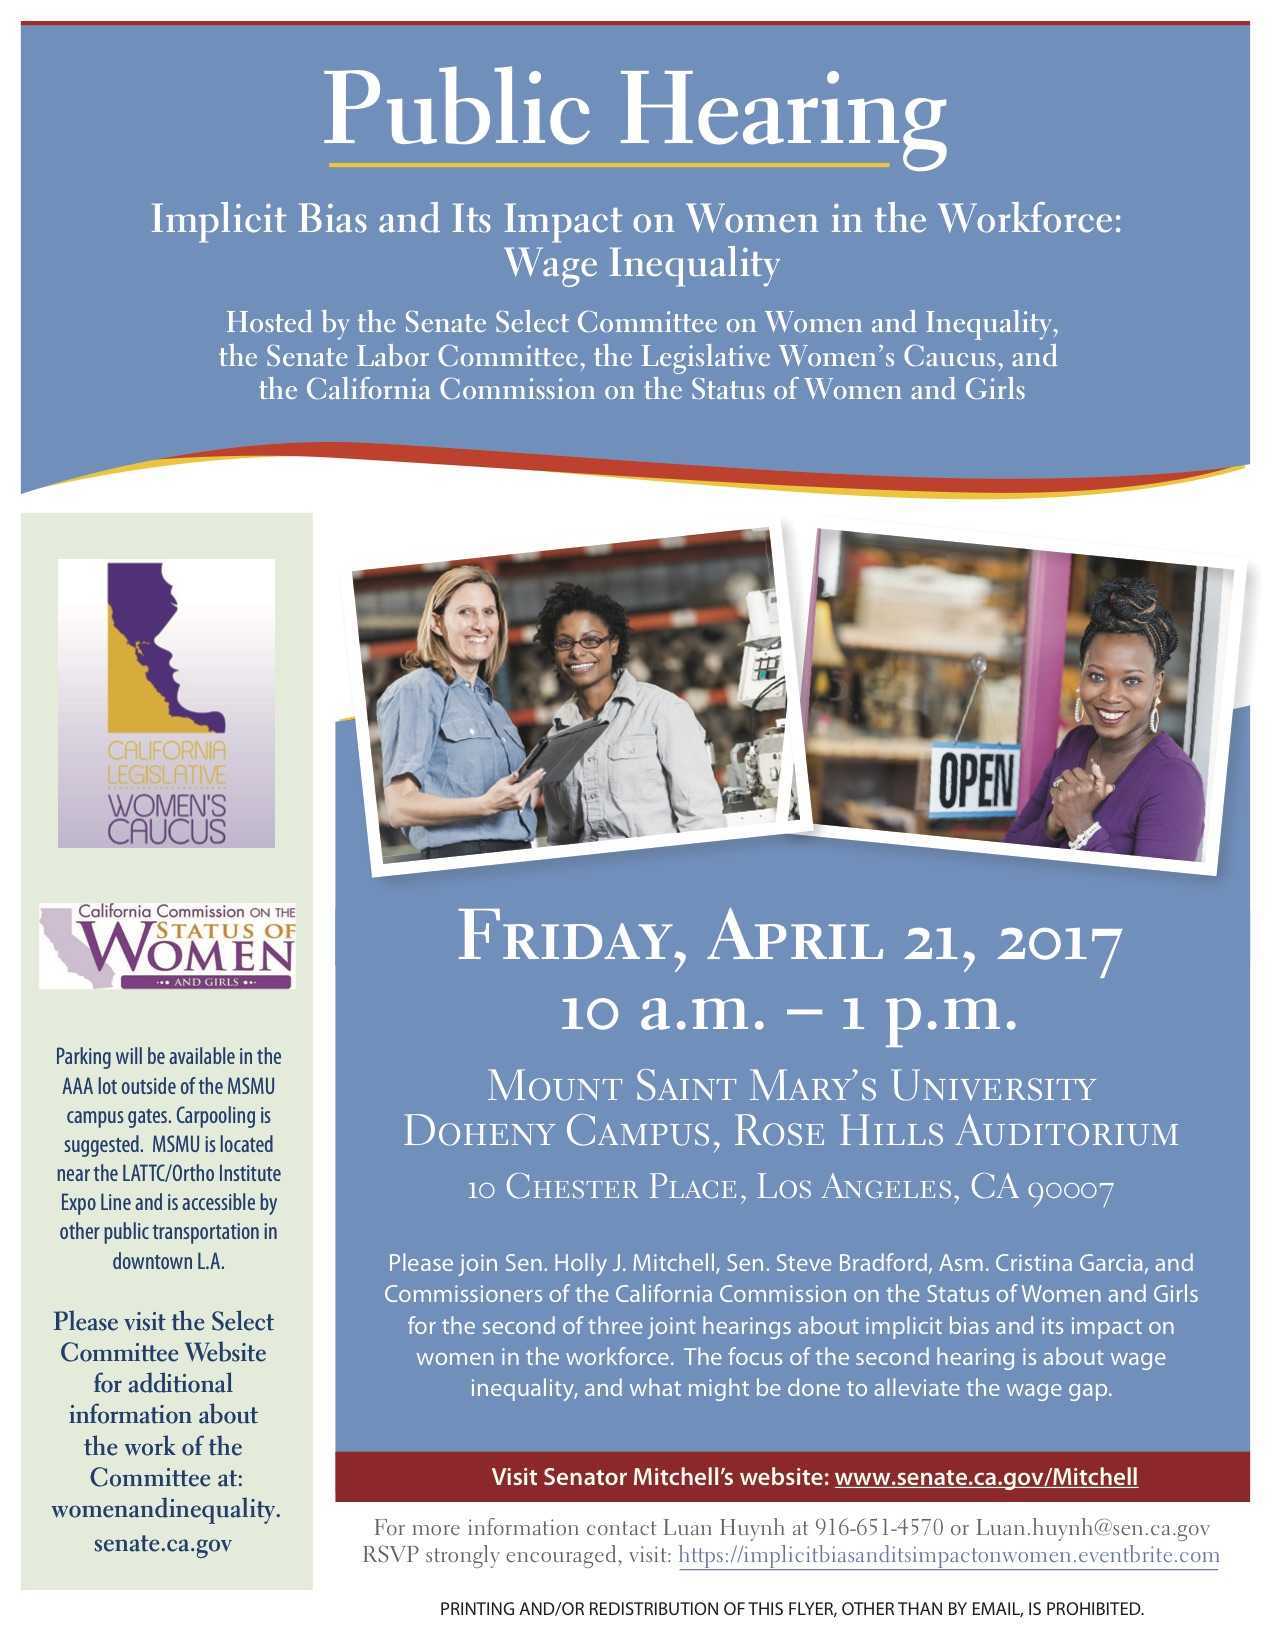 April_21_Implicit_Bias_and_Women_in_the_Workforce_Flyer_Final.jpg